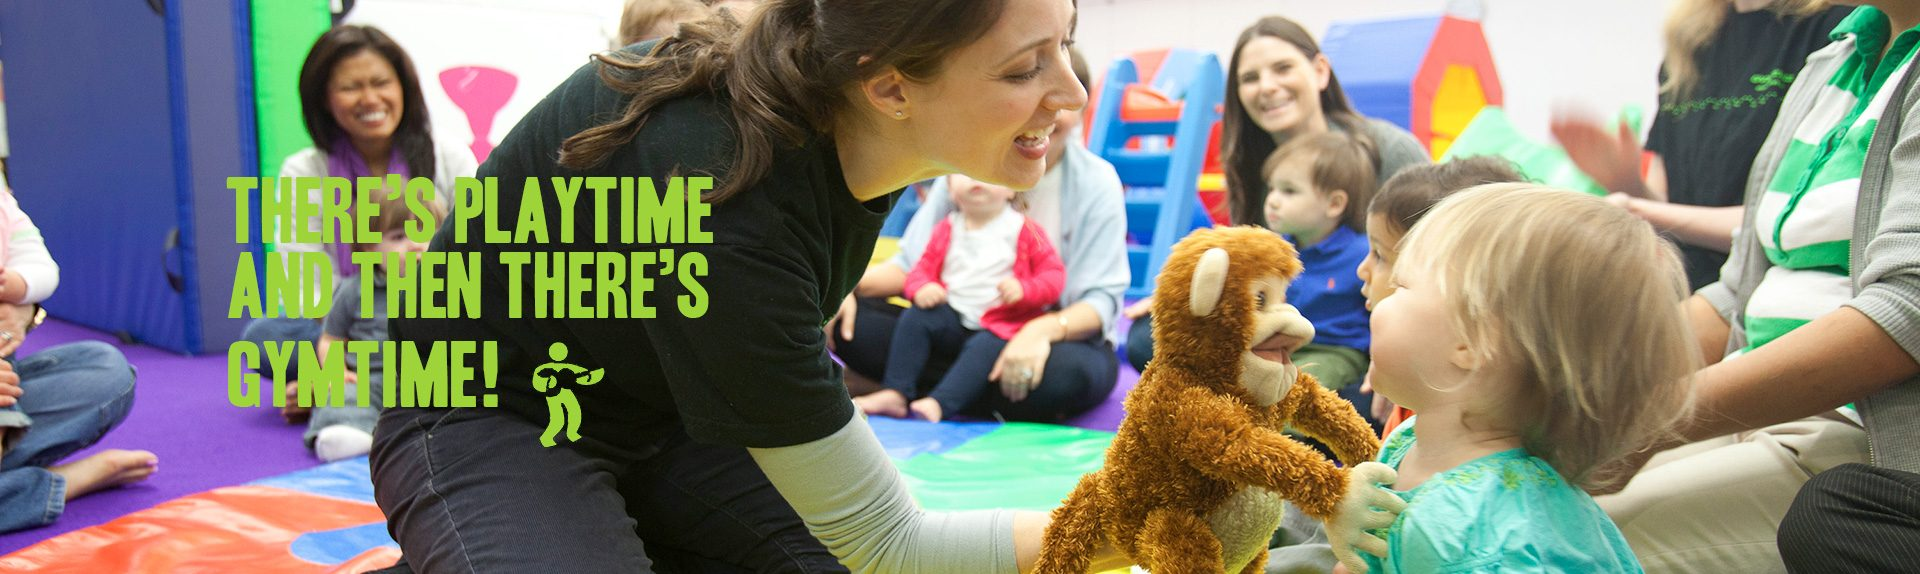 Sports Classes For Toddlers Near Me | Birthday Party Locations Nyc | Music Classes For Toddlers Nyc | Kids Art Classes Nyc | Kids Classes Upper East Side | Tumbling Classes For Toddlers | Gymnastics For Toddlers Near Me | Kids Class Upper East Side | Music Class Kids Nyc | Kids Music Class Nyc | Kids Music Class Upper East Side | Upper East Side Kid Gyms | Day Camps Upper East Side | Sports Classes For Kids Nyc | Baby Classes Nyc